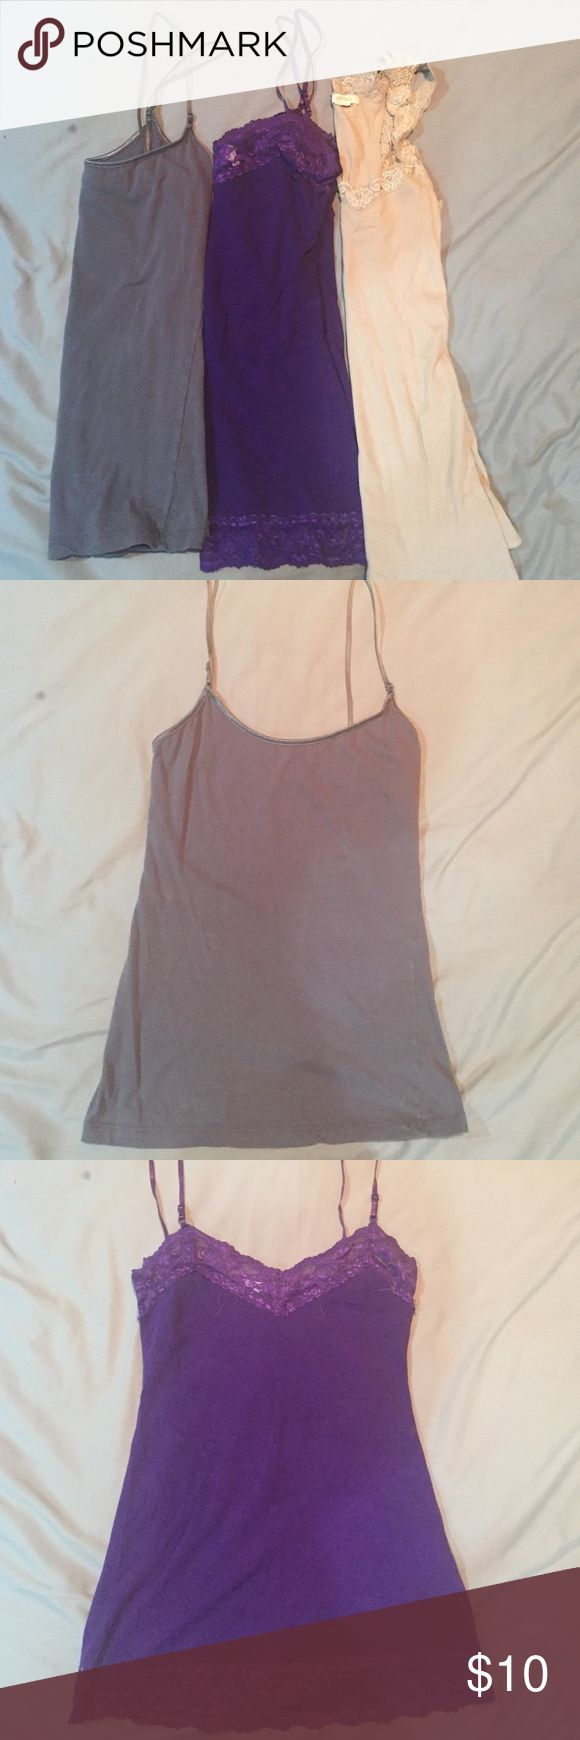 3 tank/cami bundle Grey is Tresics brand Sz M no issues, Purple is Bozzolo brand Sz L (fits like M) elastic on lace has some signs of wear but still great for layering. Inside tag had the stitch come off one side but it doesn't effect wear. Beige is Bozzolo brand and size L (fits like M) no issues. Bozzolo Tops Camisoles